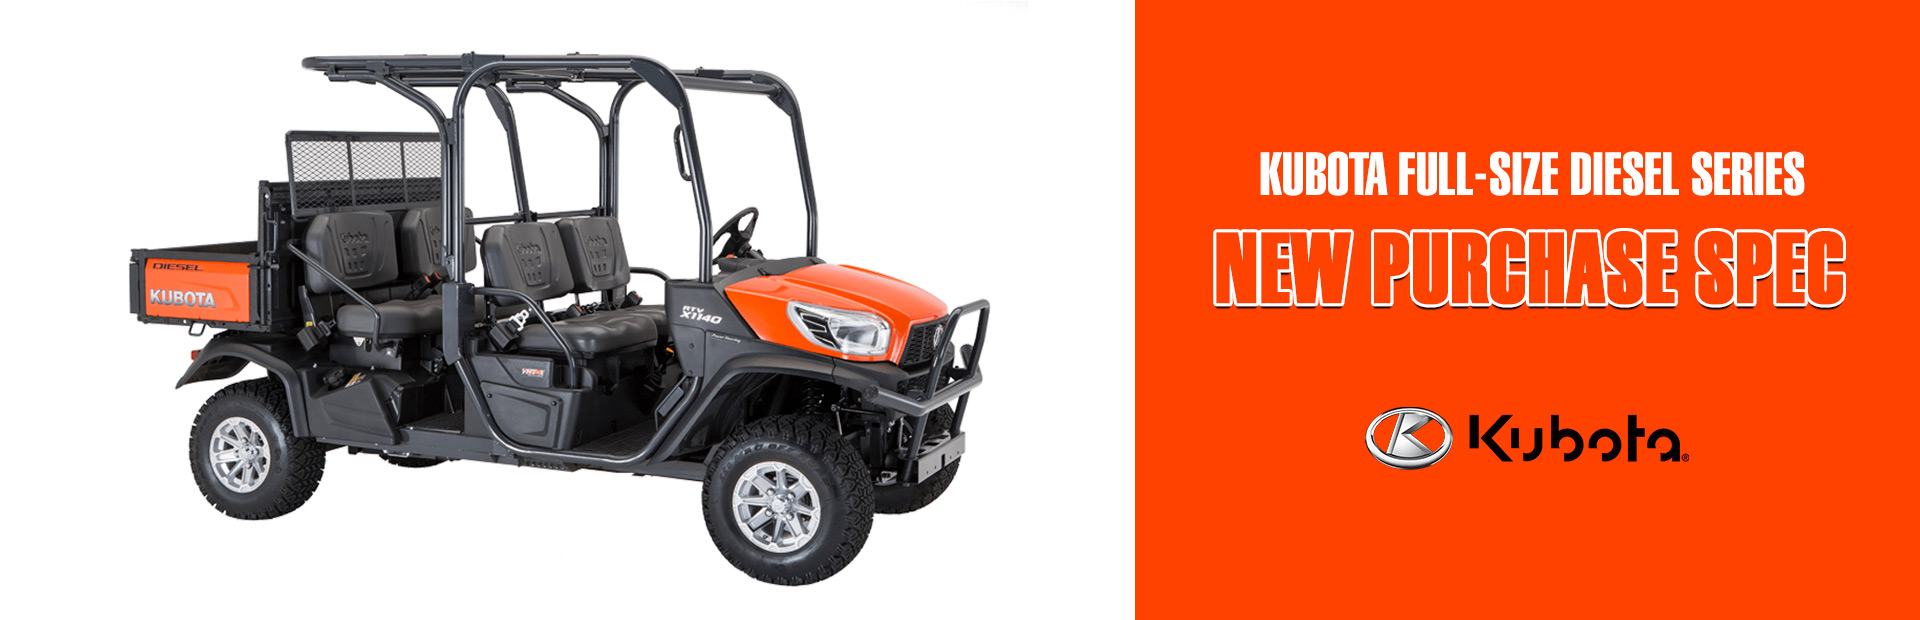 Kubota: KUBOTA FULL-SIZE DIESEL SERIES - NEW PURCHASE SPEC